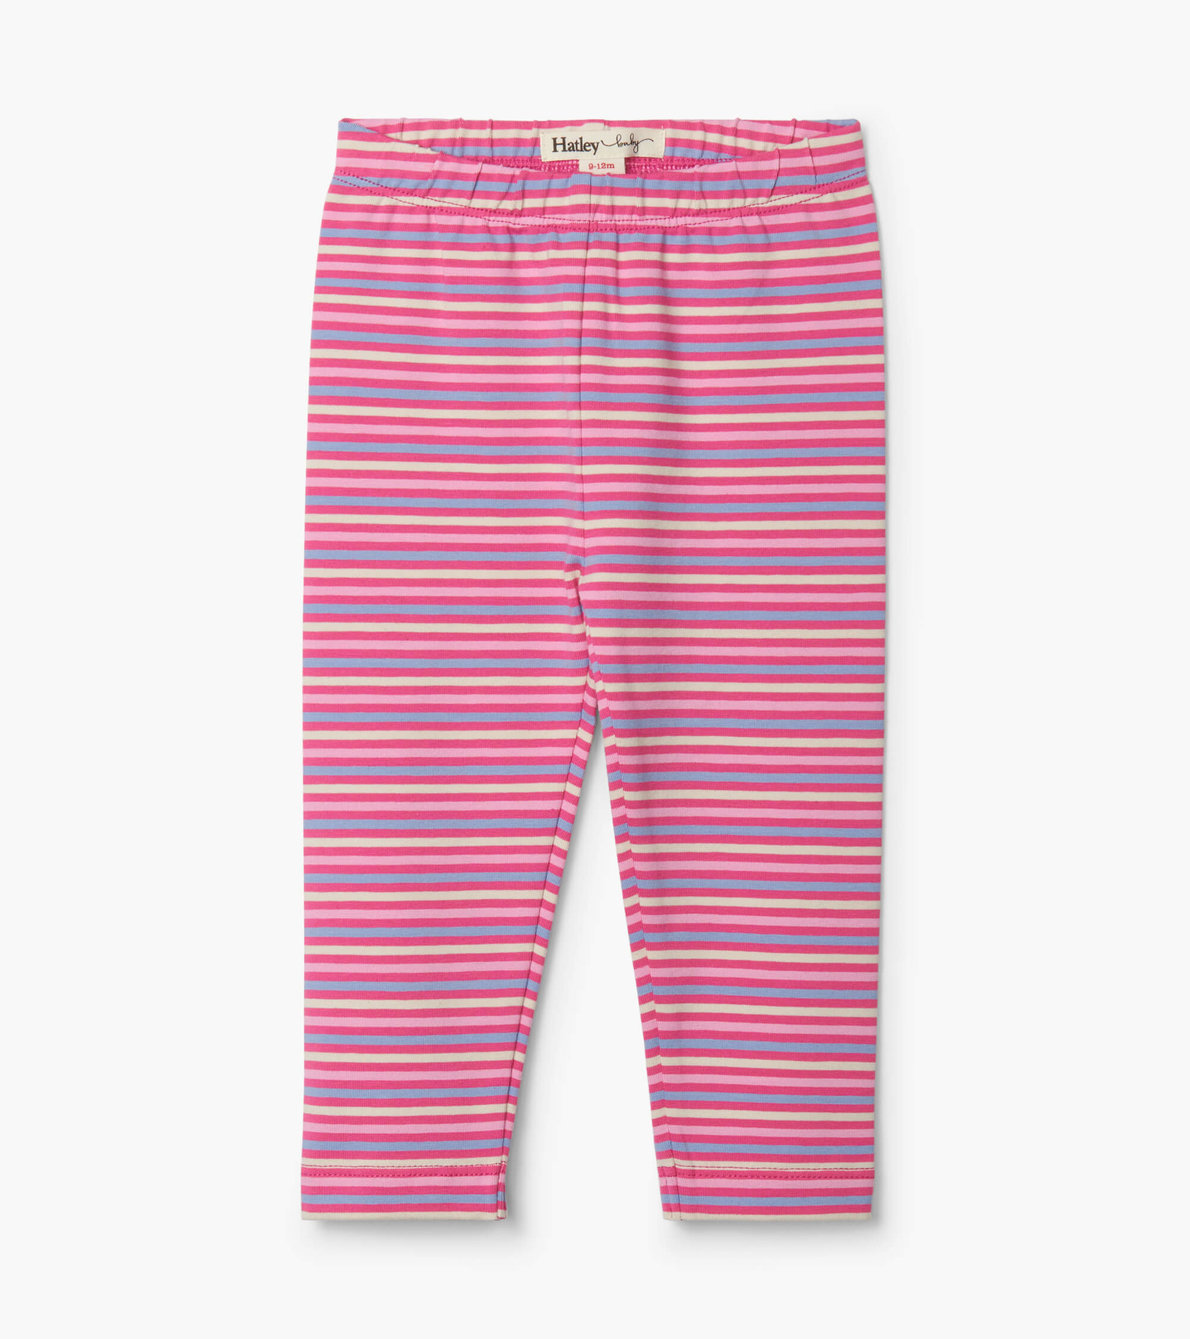 View larger image of Rose Stripes Baby Leggings